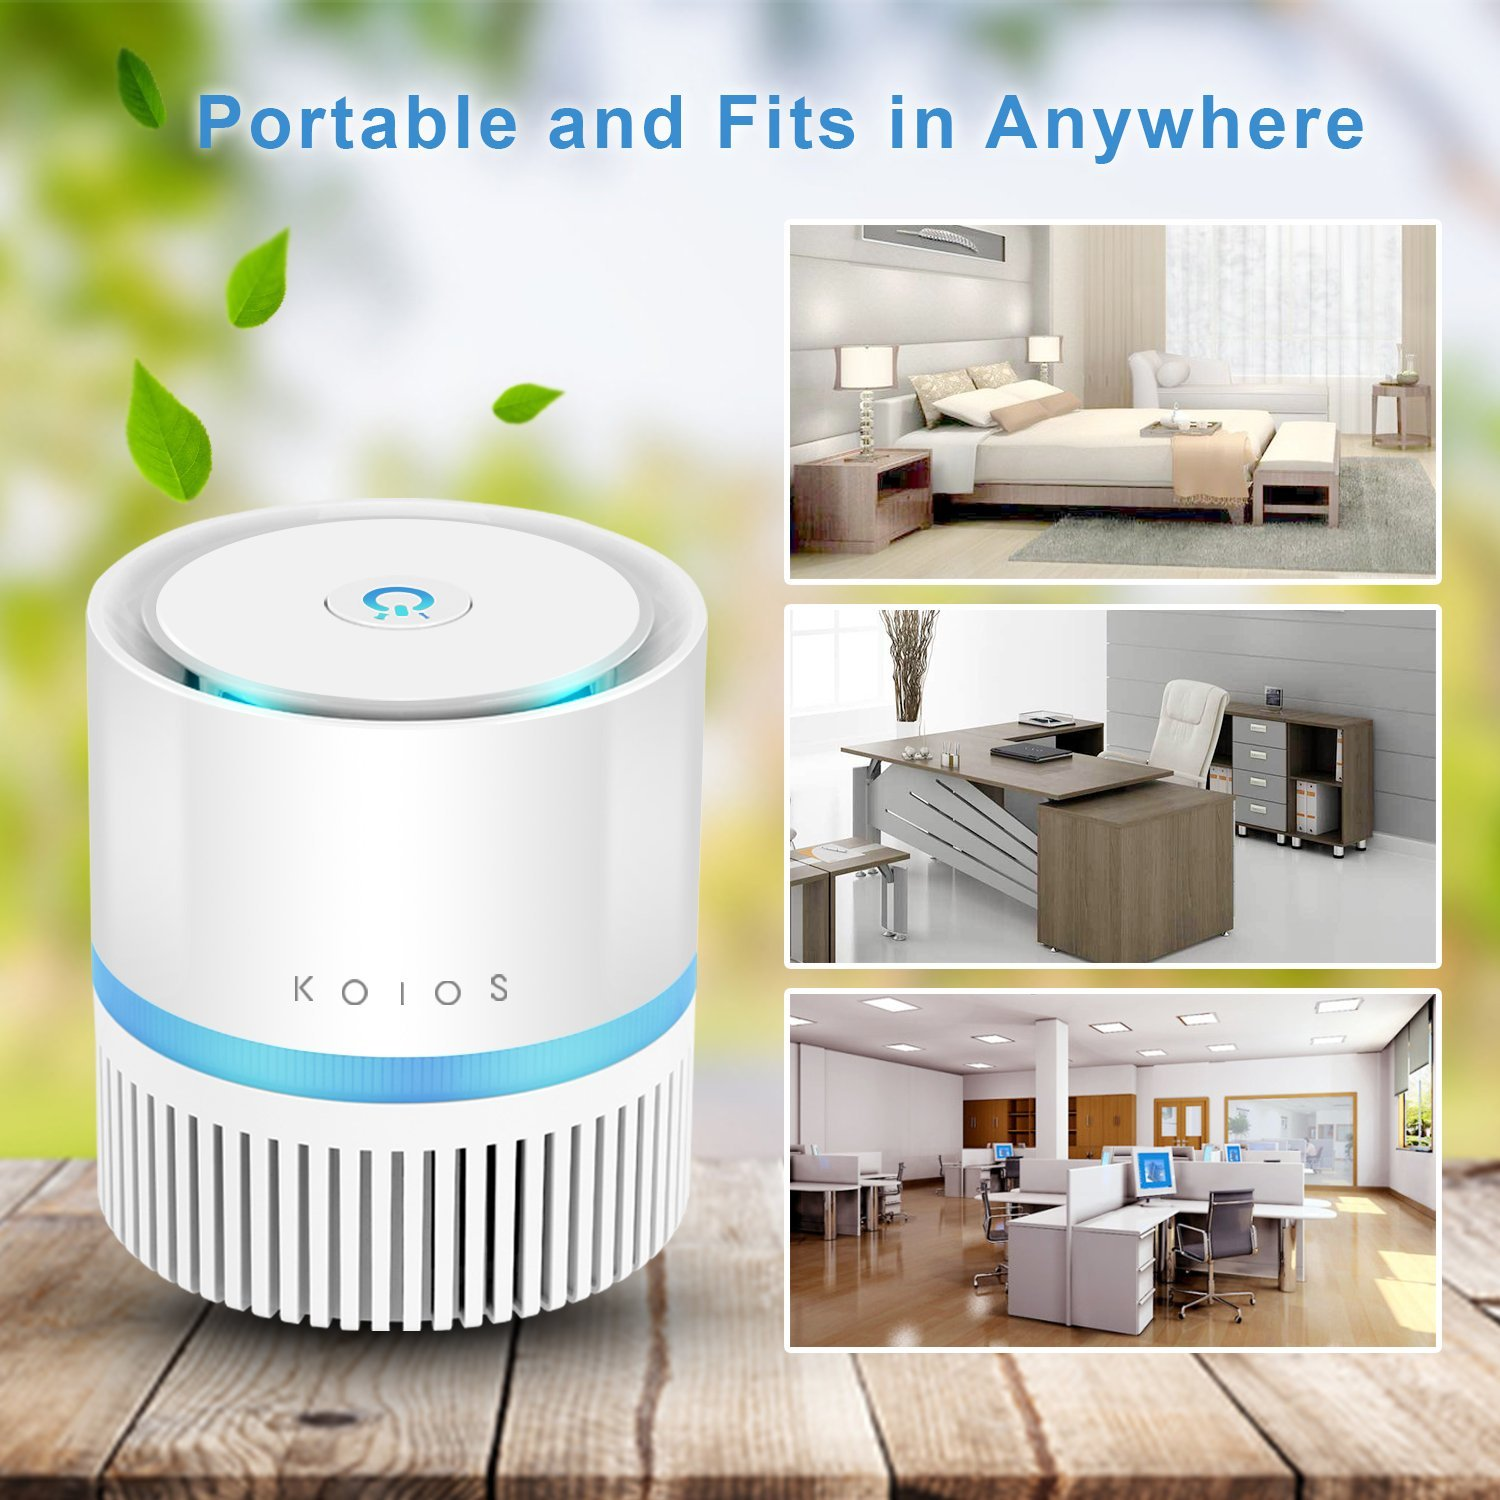 Koios Desktop Air Purifier